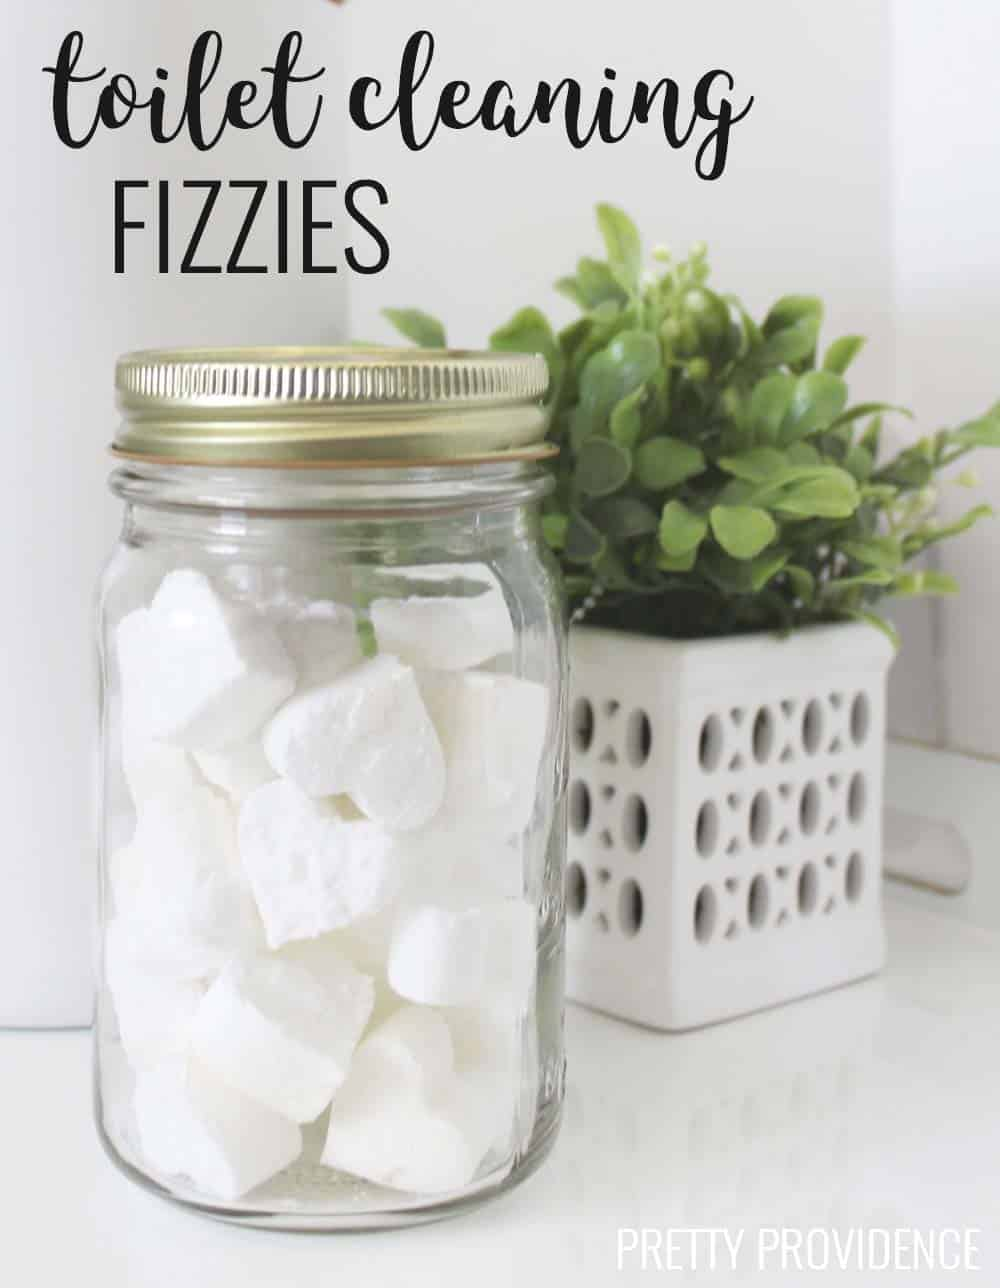 Diy Toilet Cleaning Fizzies Pretty Providence